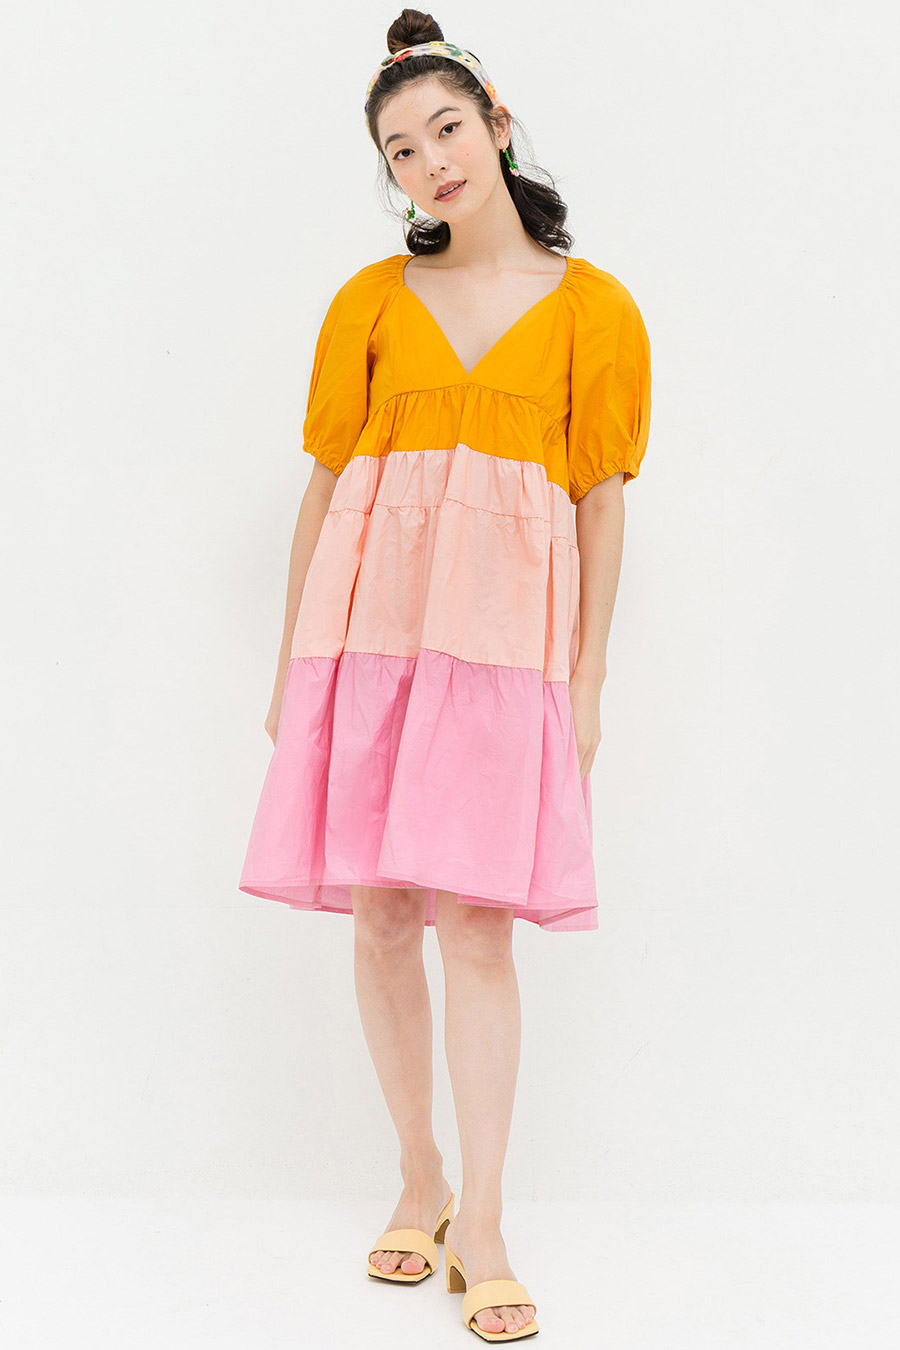 EMMELINE DRESS - SUMMER